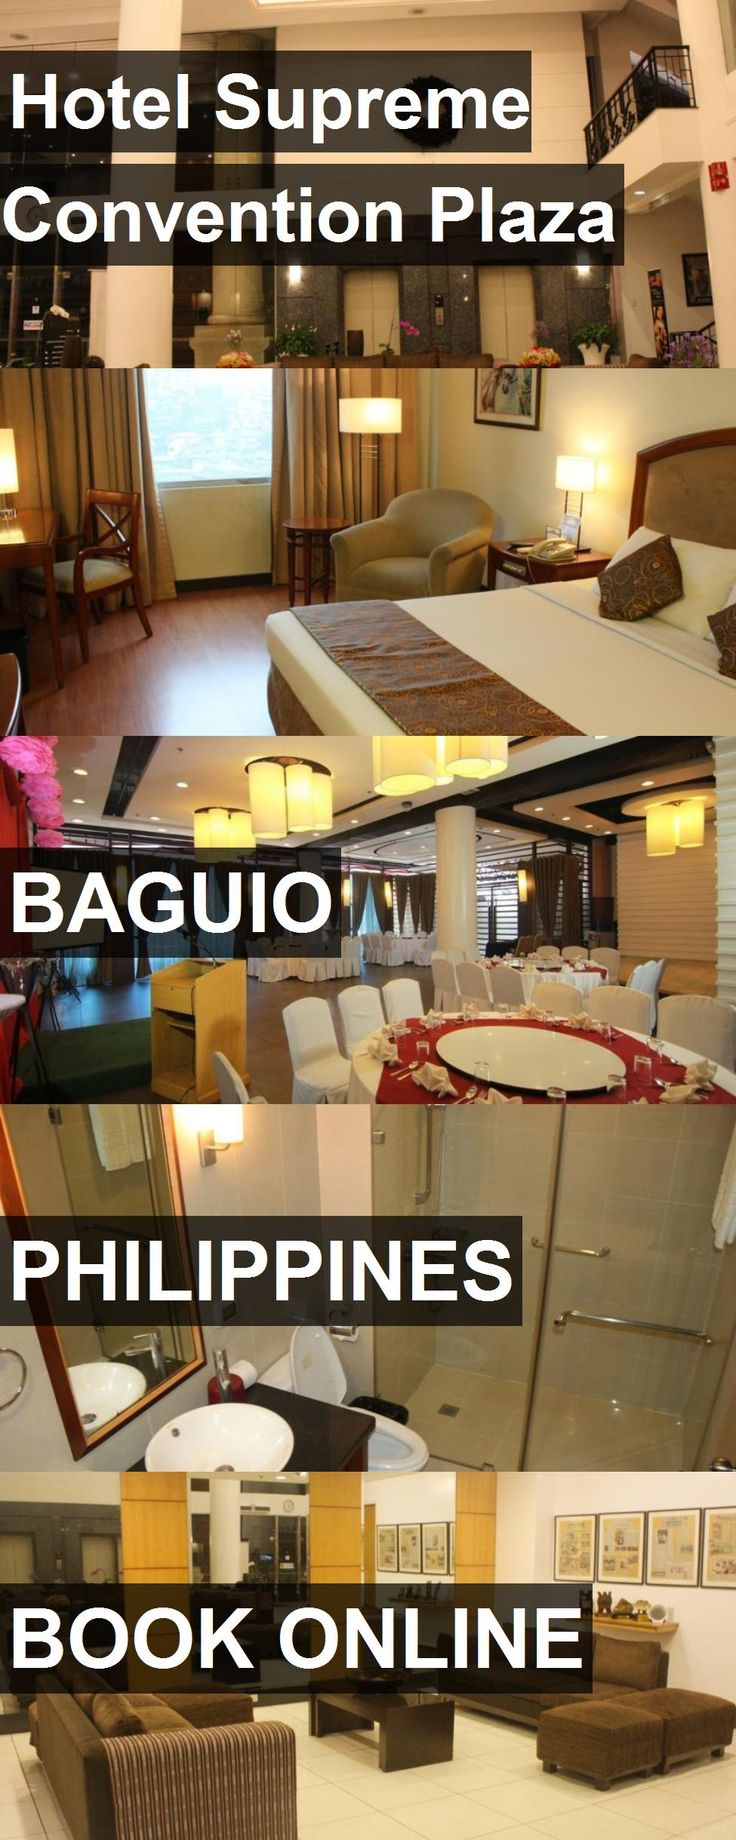 Hotel Hotel Supreme Convention Plaza in Baguio, Philippines. For more information, photos, reviews and best prices please follow the link. #Philippines #Baguio #HotelSupremeConventionPlaza #hotel #travel #vacation